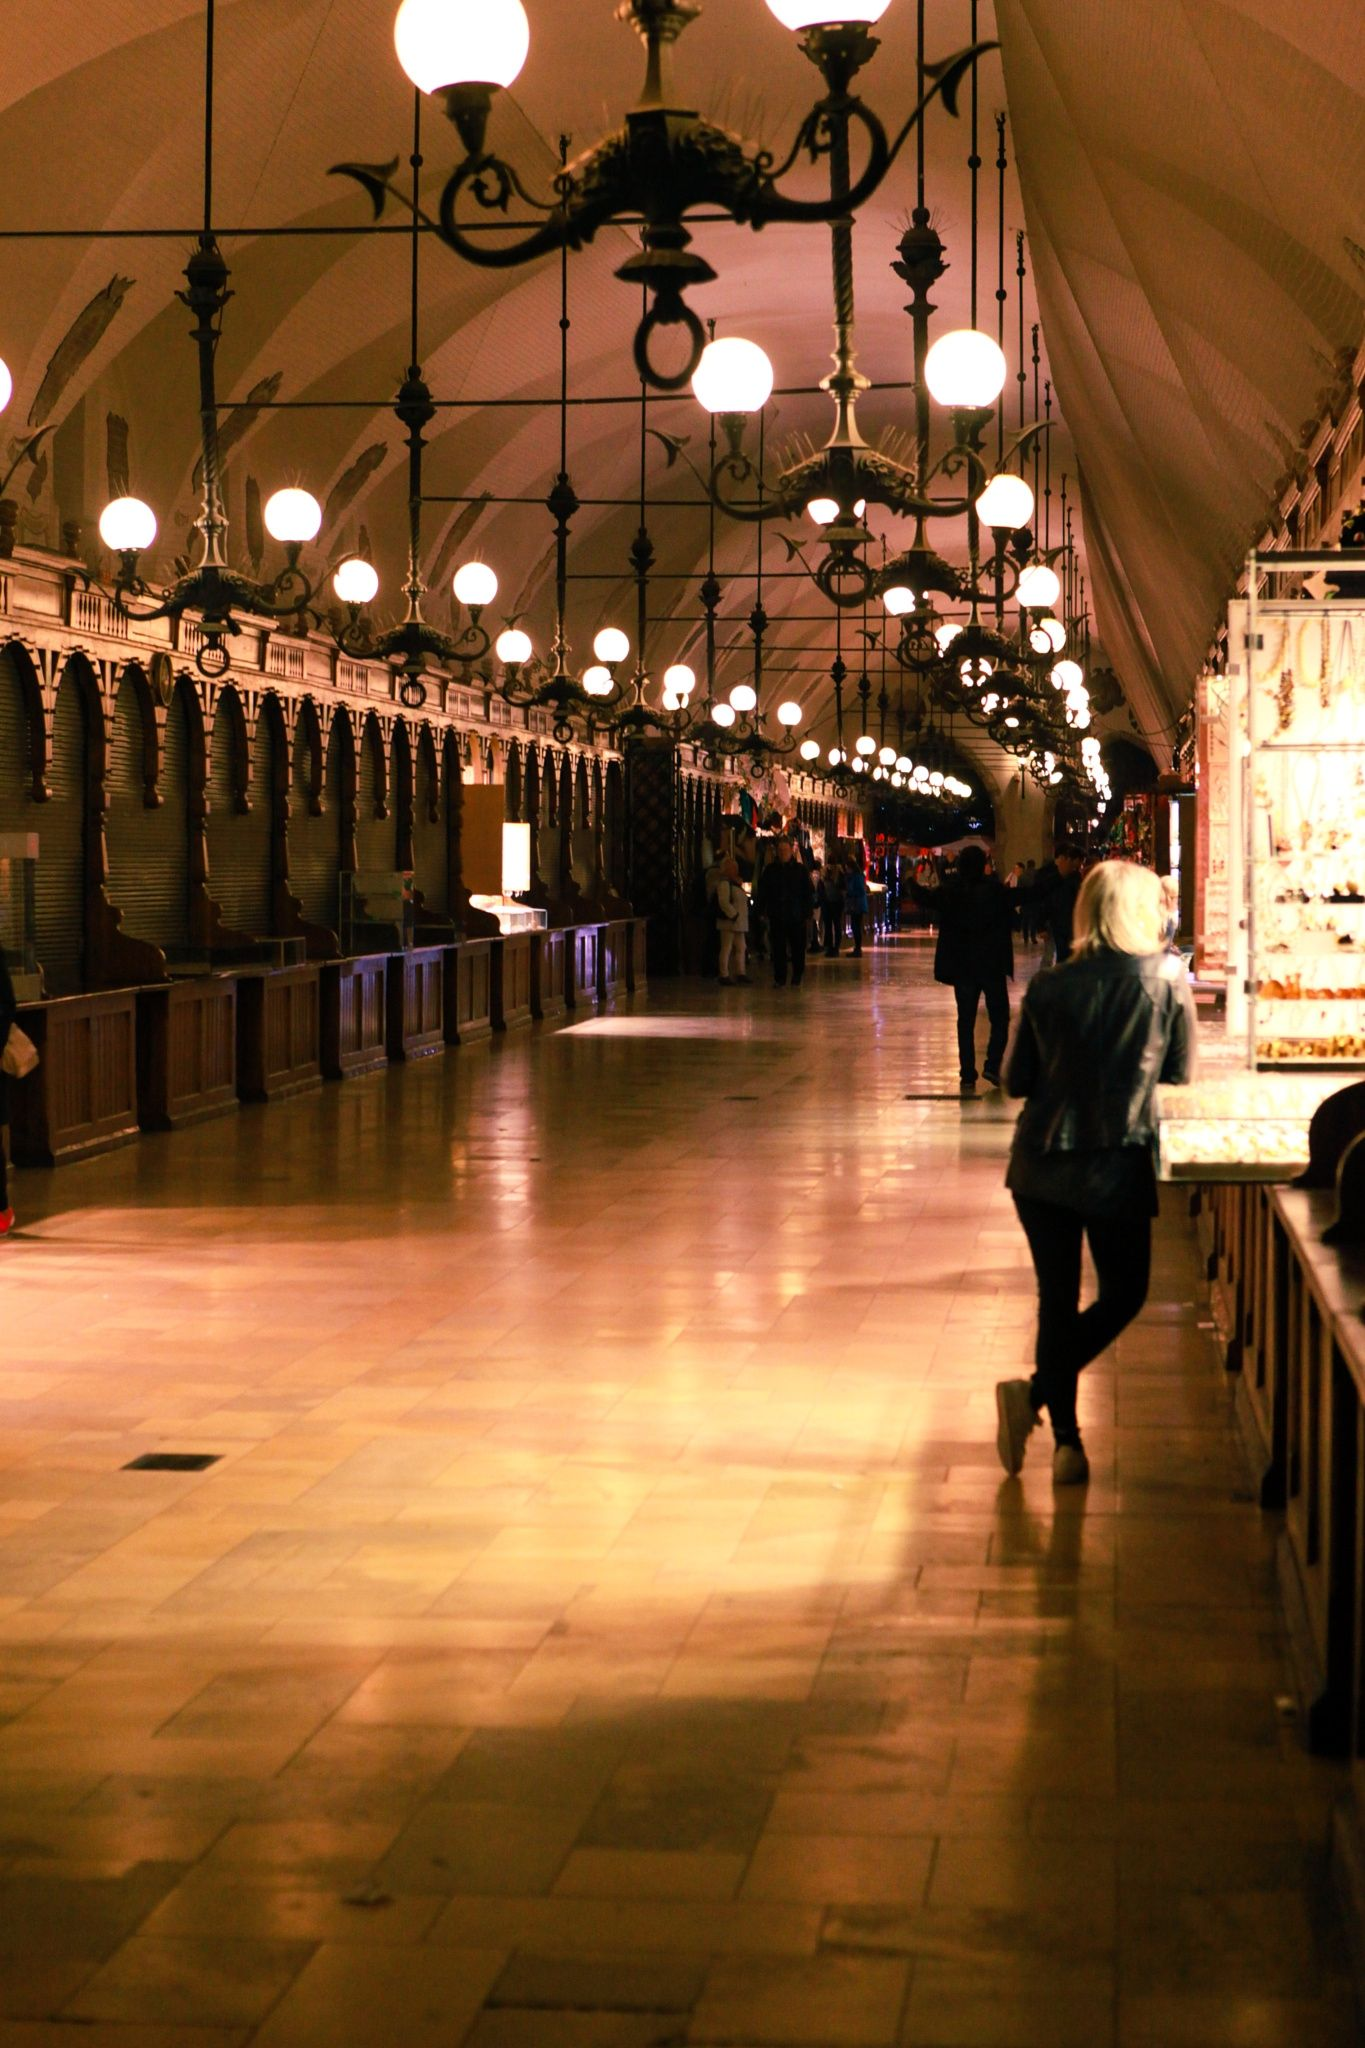 The Cloth Hall - Renaissance-style market arcade with 13th-century origins & a 19th-century Polish art museum.